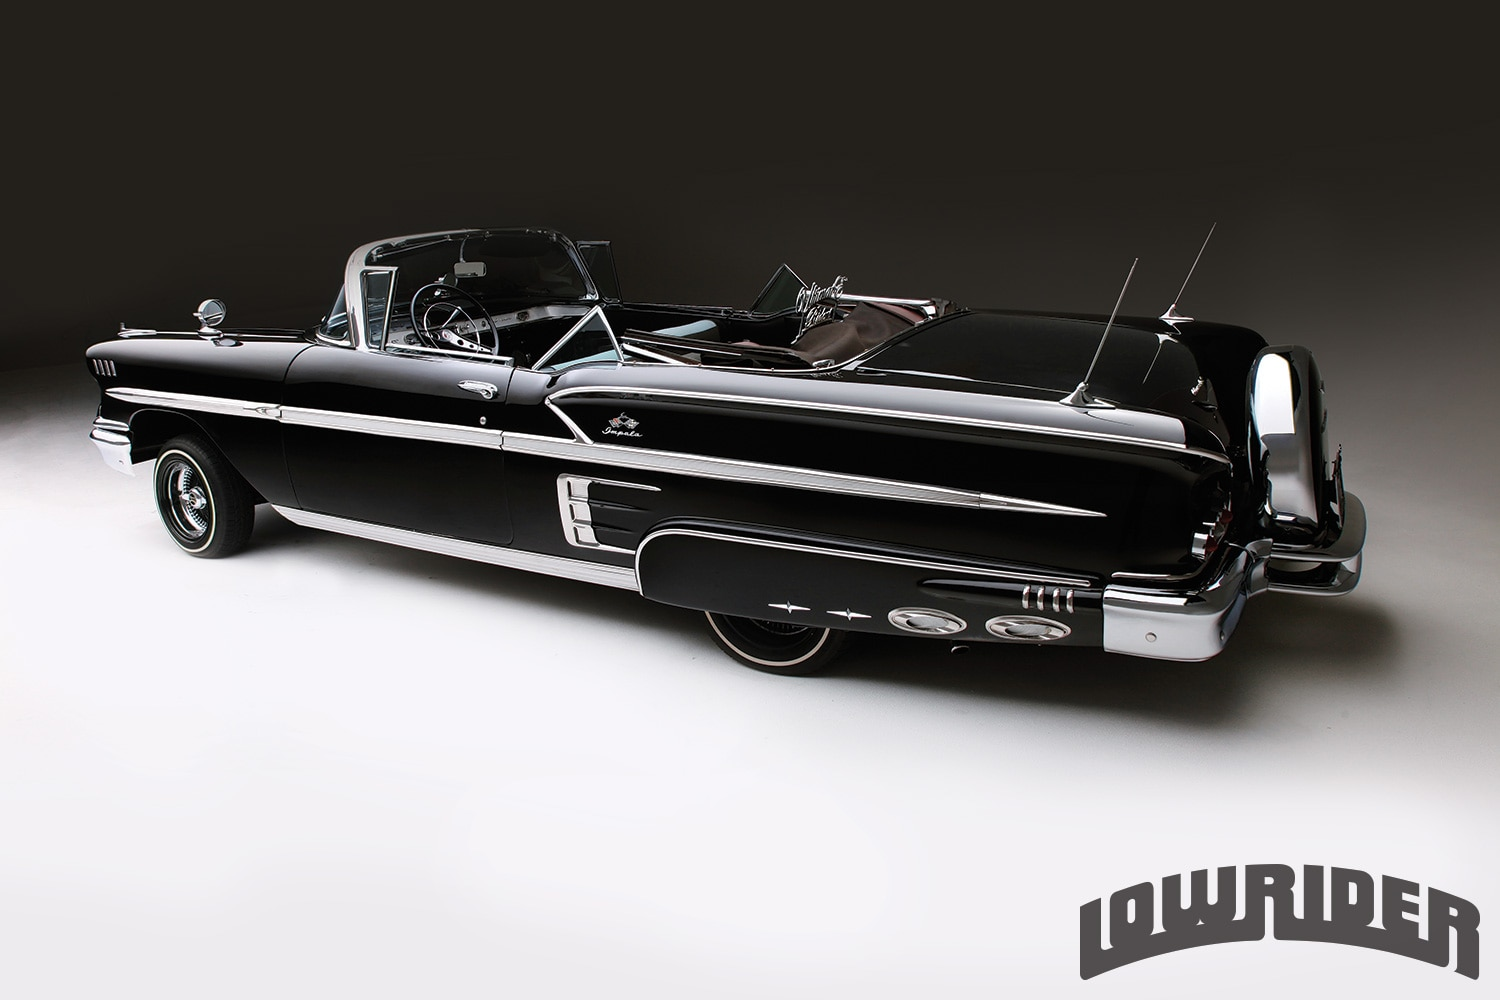 1958 and 1959 Chevrolet Impala Convertibles - Lowrider ...